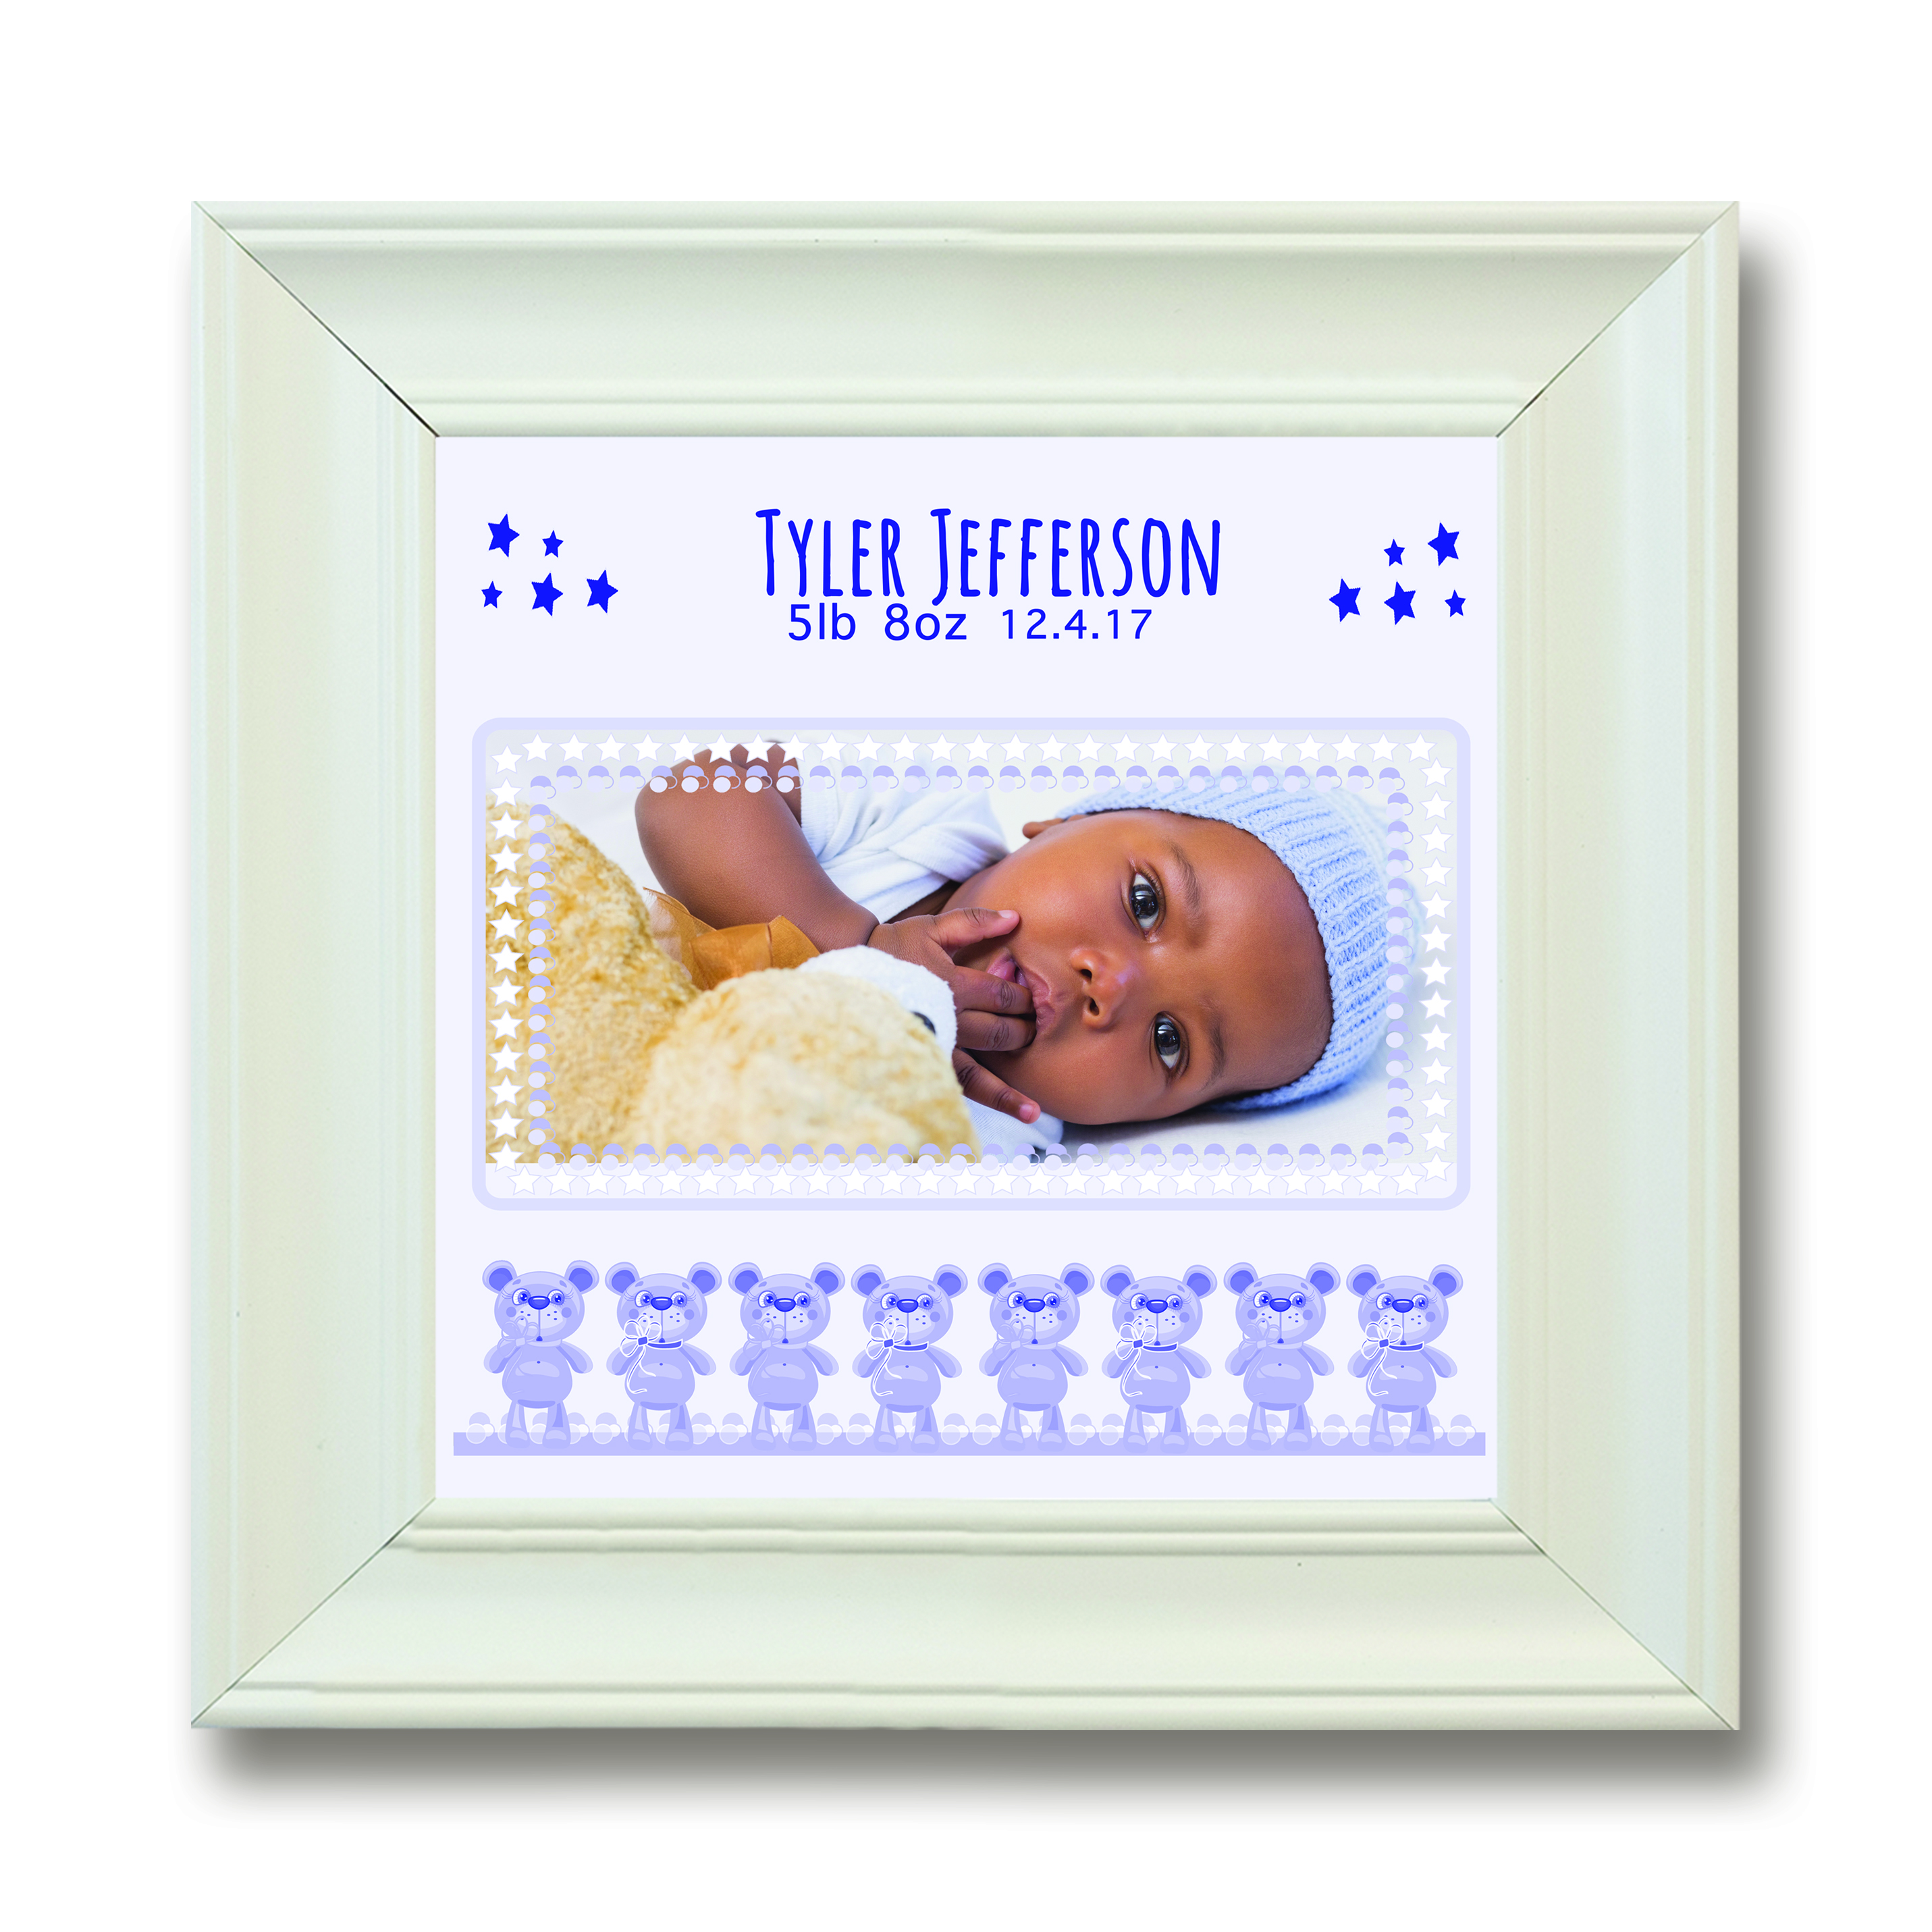 Baby-Square-Photoboard-23-copy